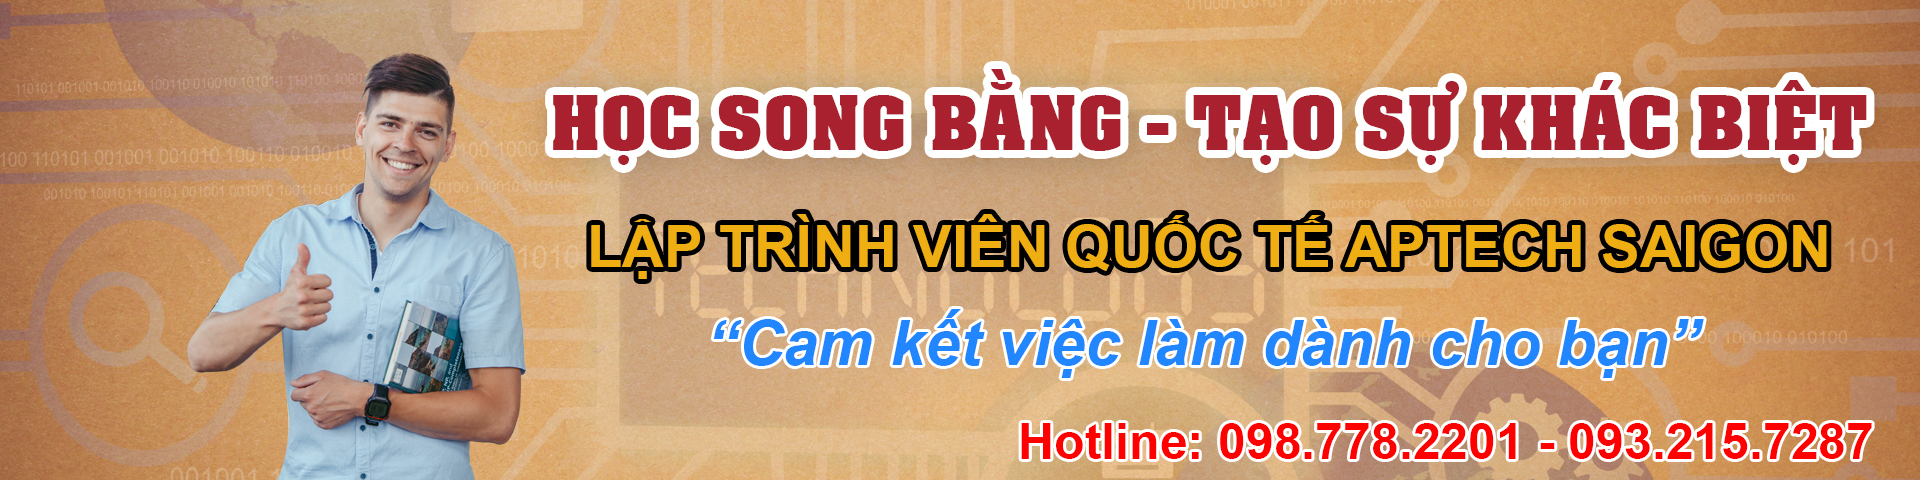 Banner song bằng